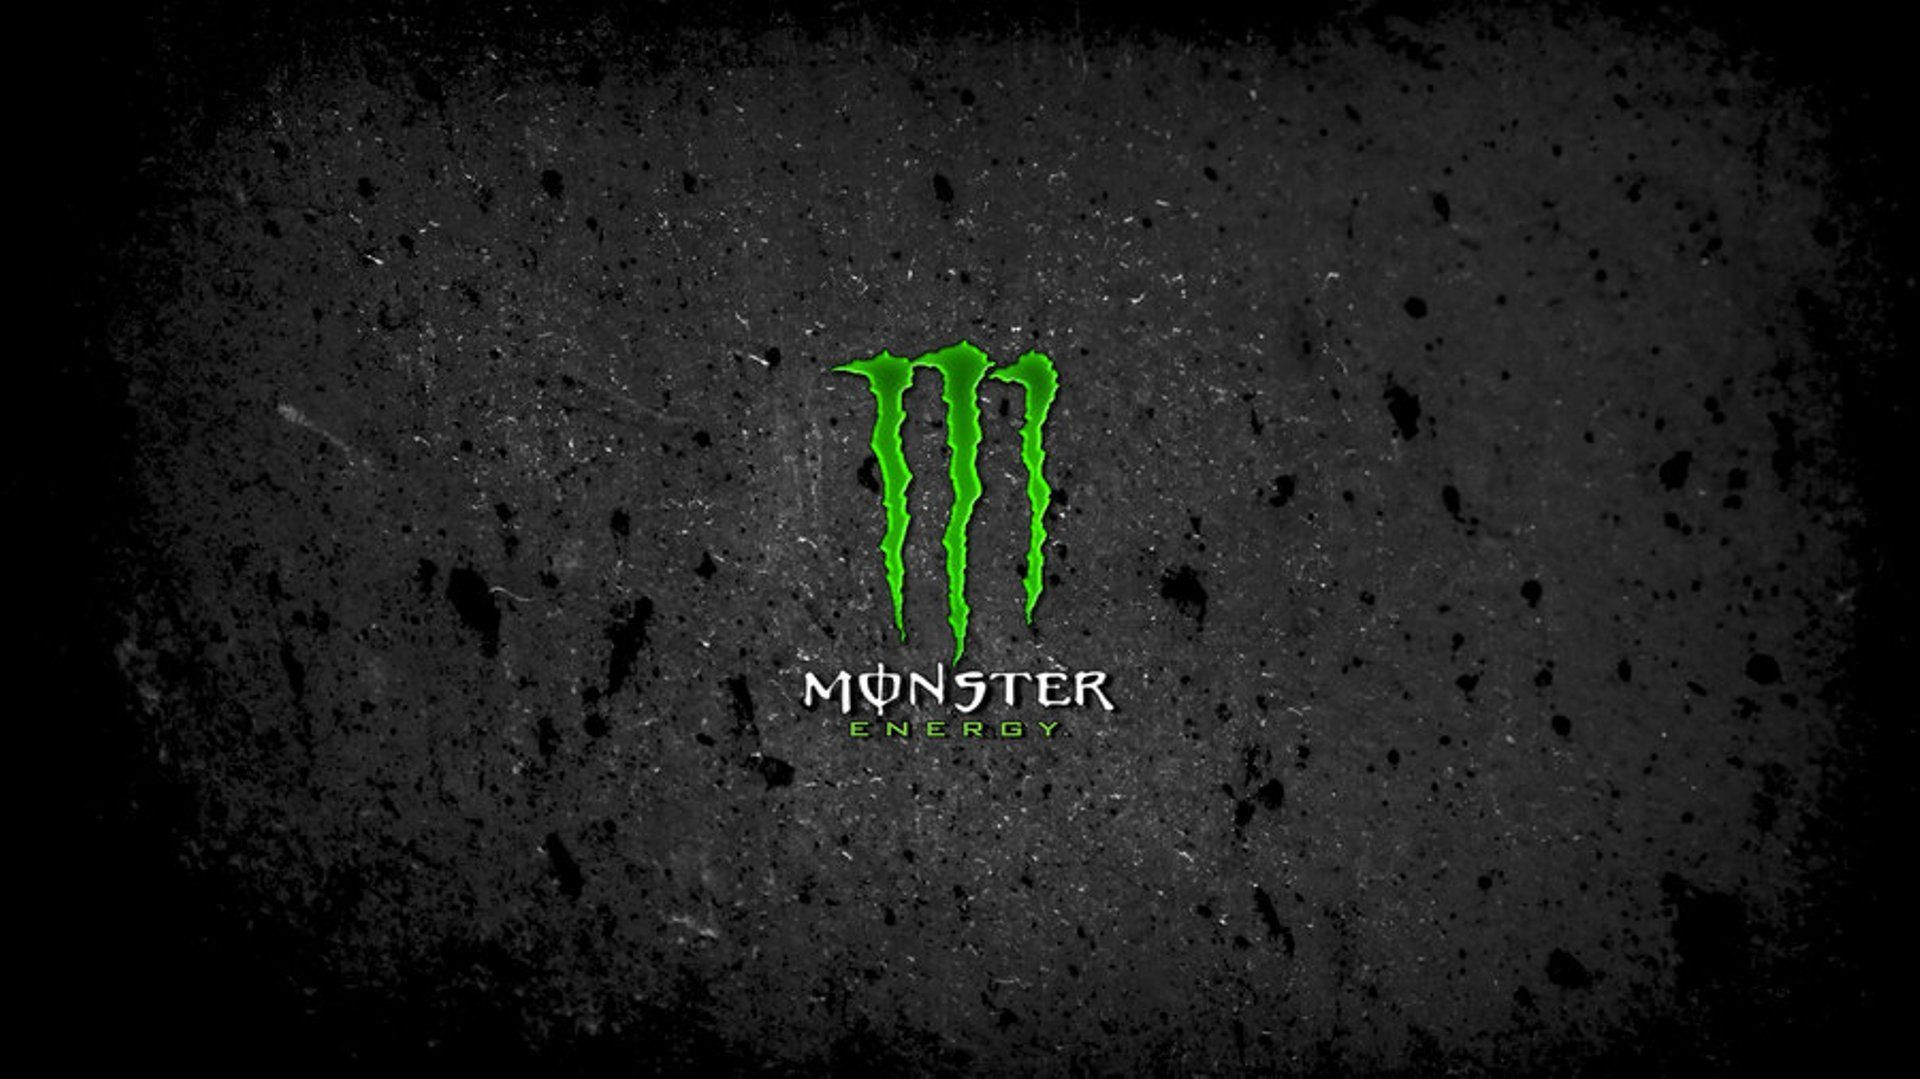 Monster energy wallpapers hd wallpaper 19201079 wallpaper monster monster energy wallpapers hd wallpaper 19201079 wallpaper monster 51 wallpapers adorable wallpapers monster energy pinterest hd wallpaper voltagebd Choice Image